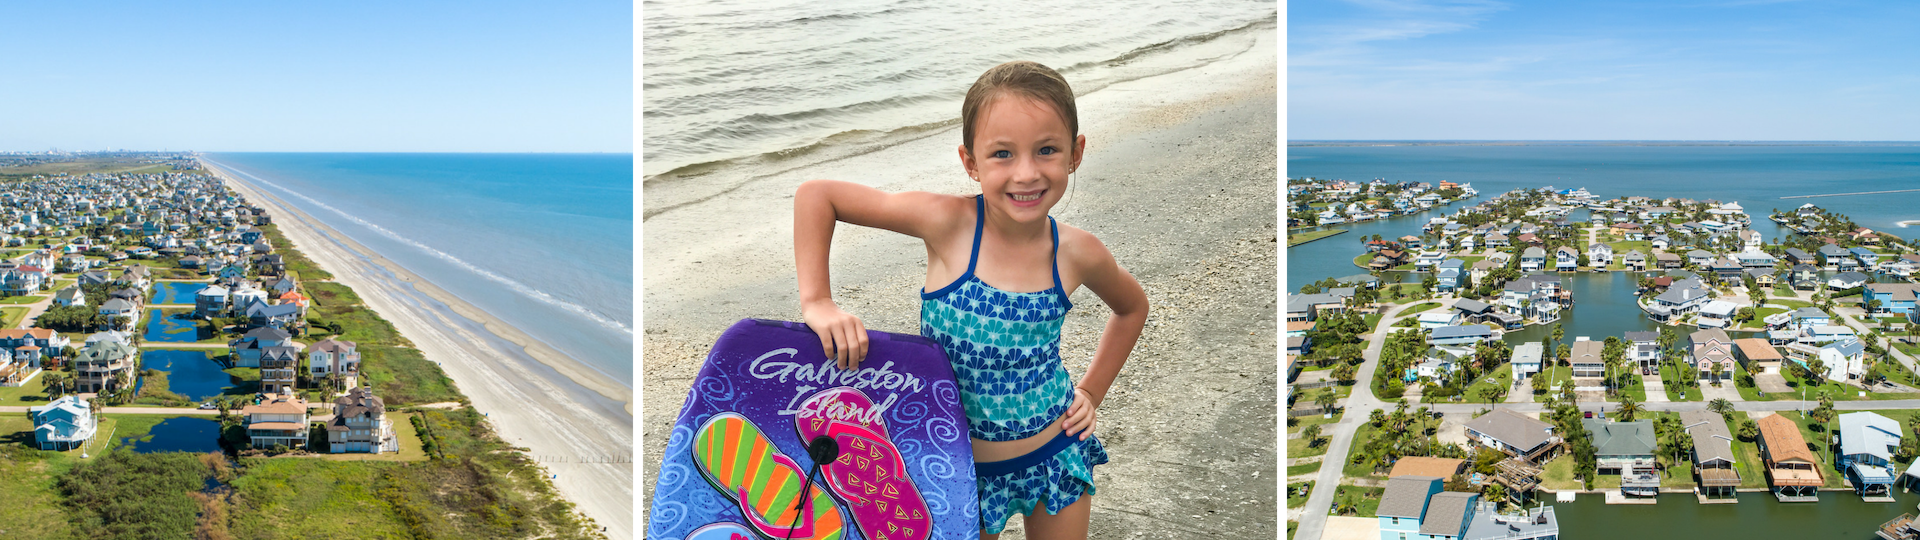 aerial view of beach houses, little girl with boogie board